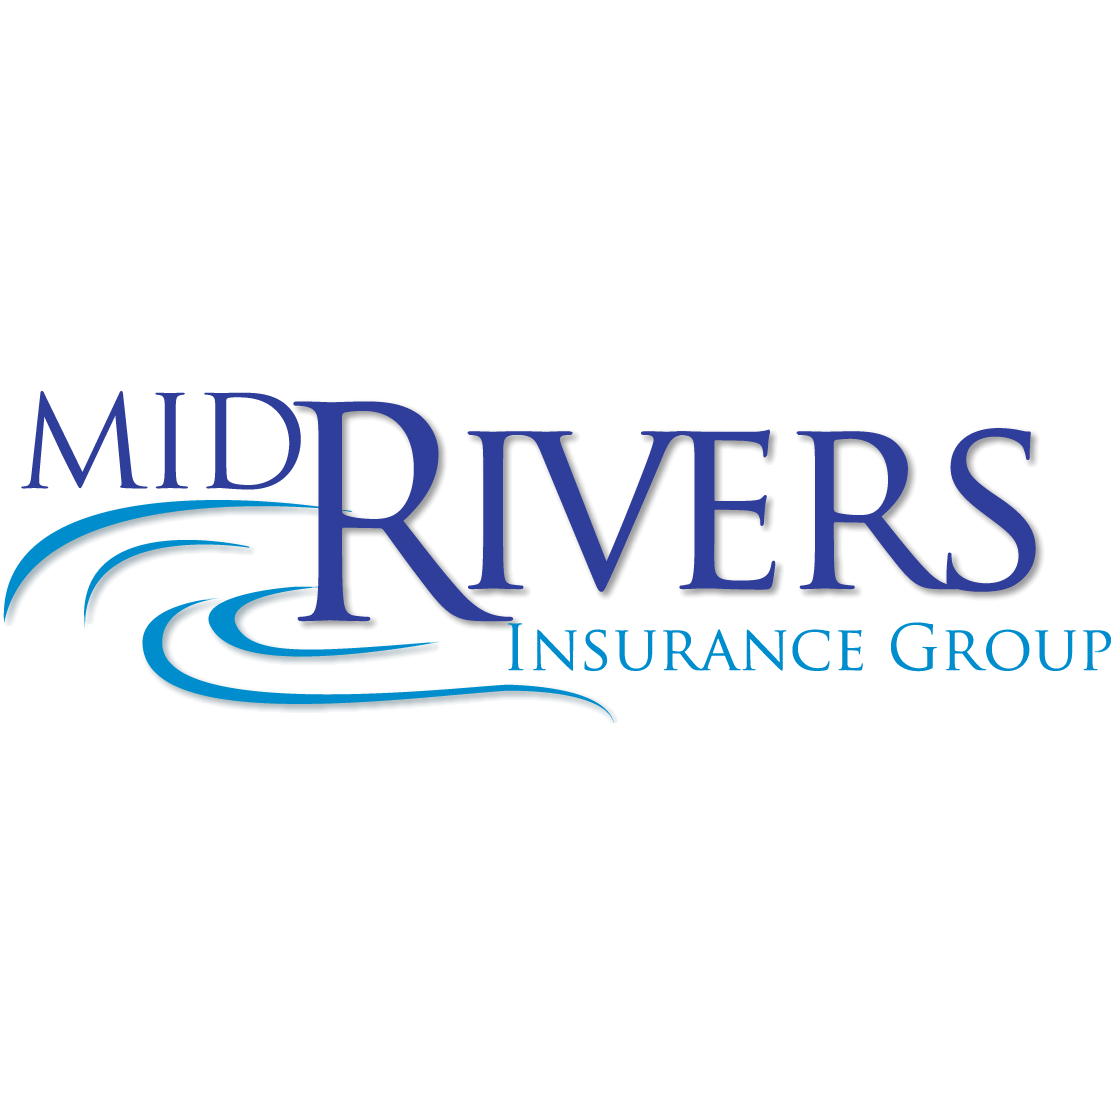 Mid Rivers Insurance - St. Peters, MO - Insurance Agents